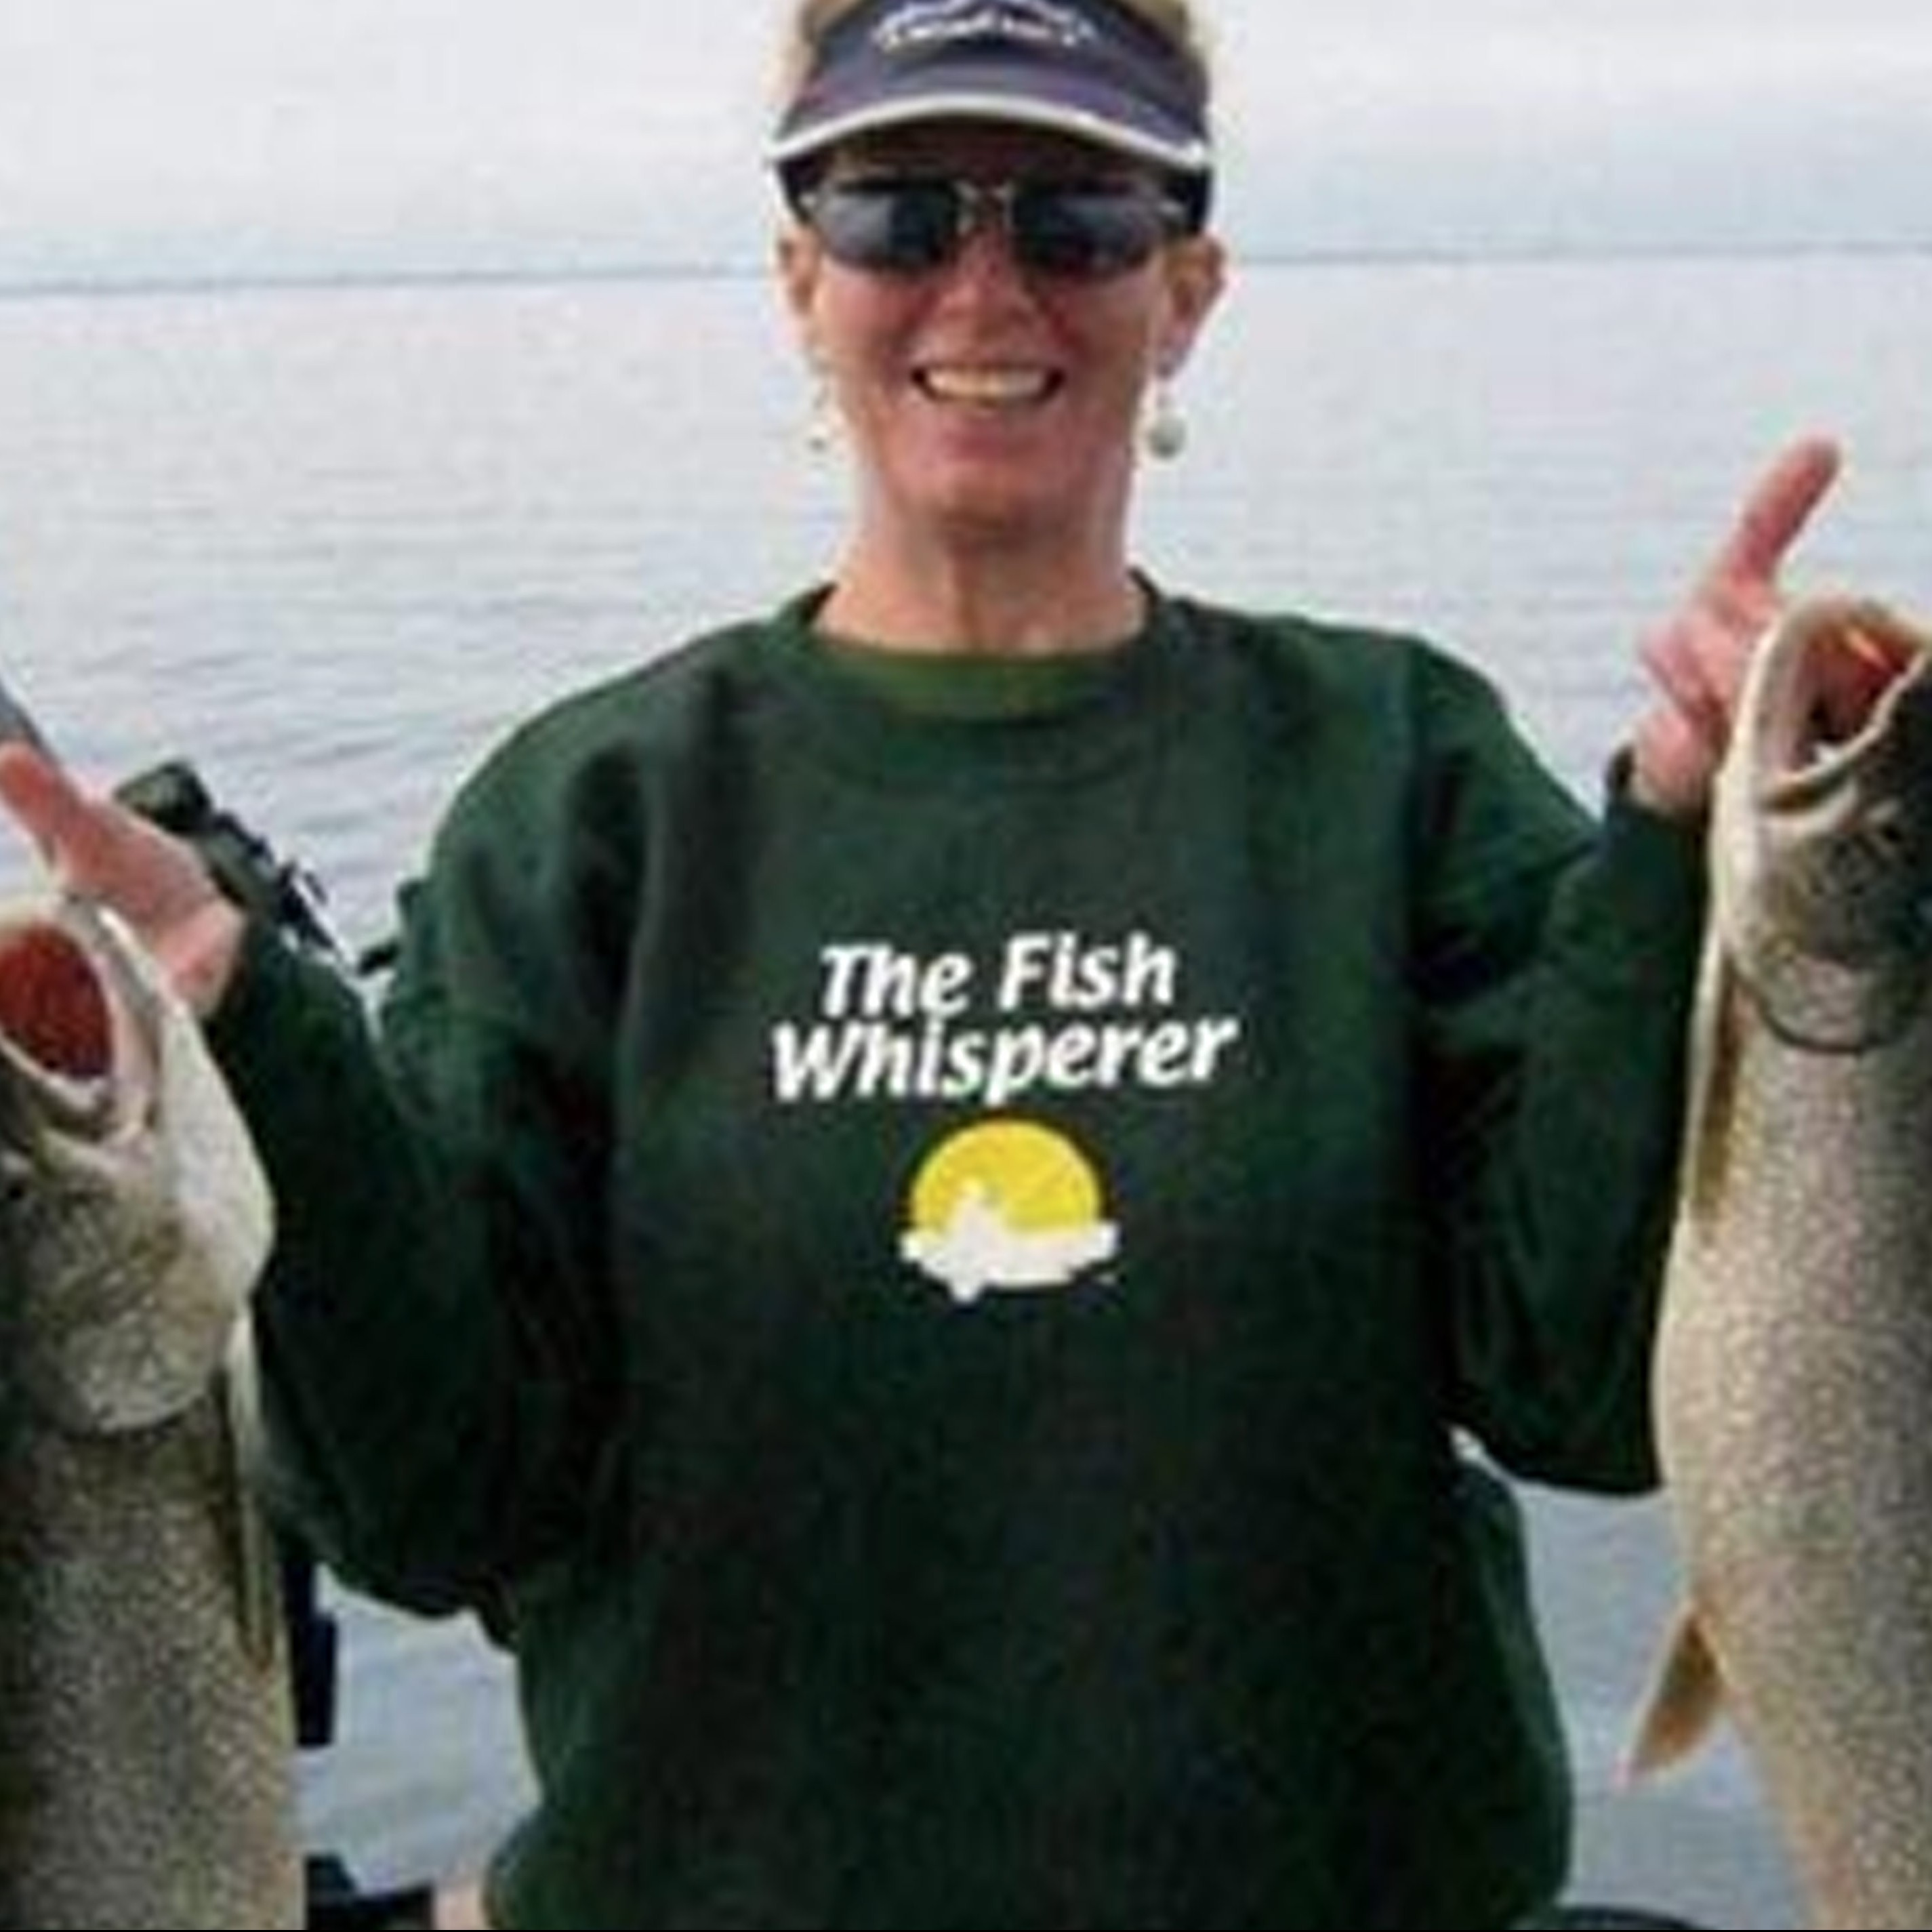 Duluth charter fishing guides in duluth minnesota for Charter fishing duluth mn